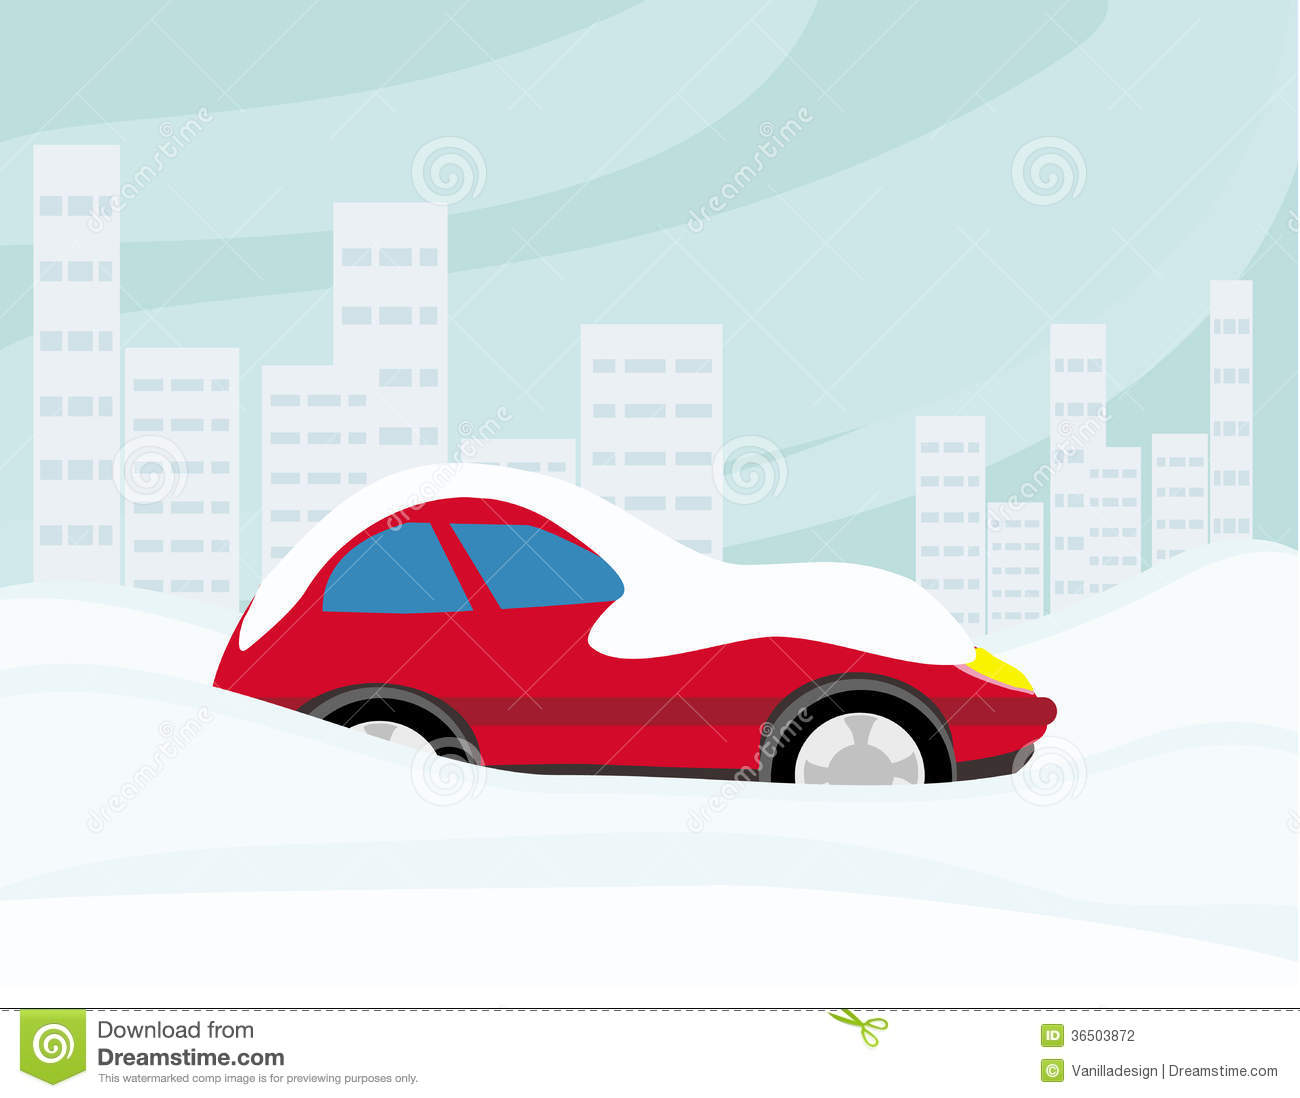 Car with snow car clipart black and white library Frozen Car Stock Illustrations – 197 Frozen Car Stock ... black and white library